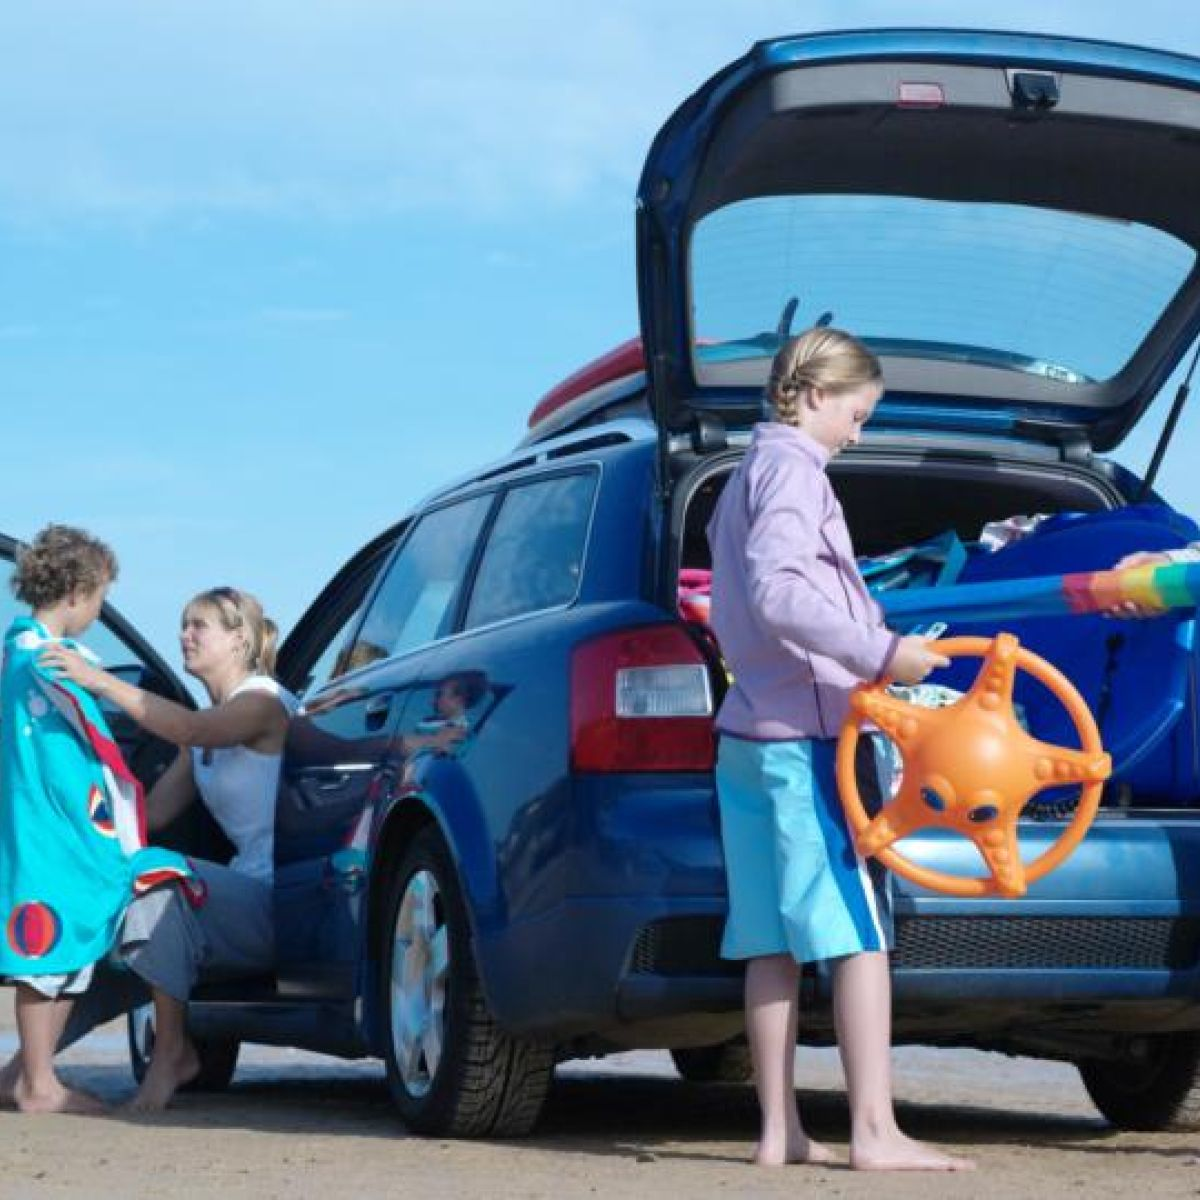 Pricewatch Q&A: All you need to know about hiring a car abroad